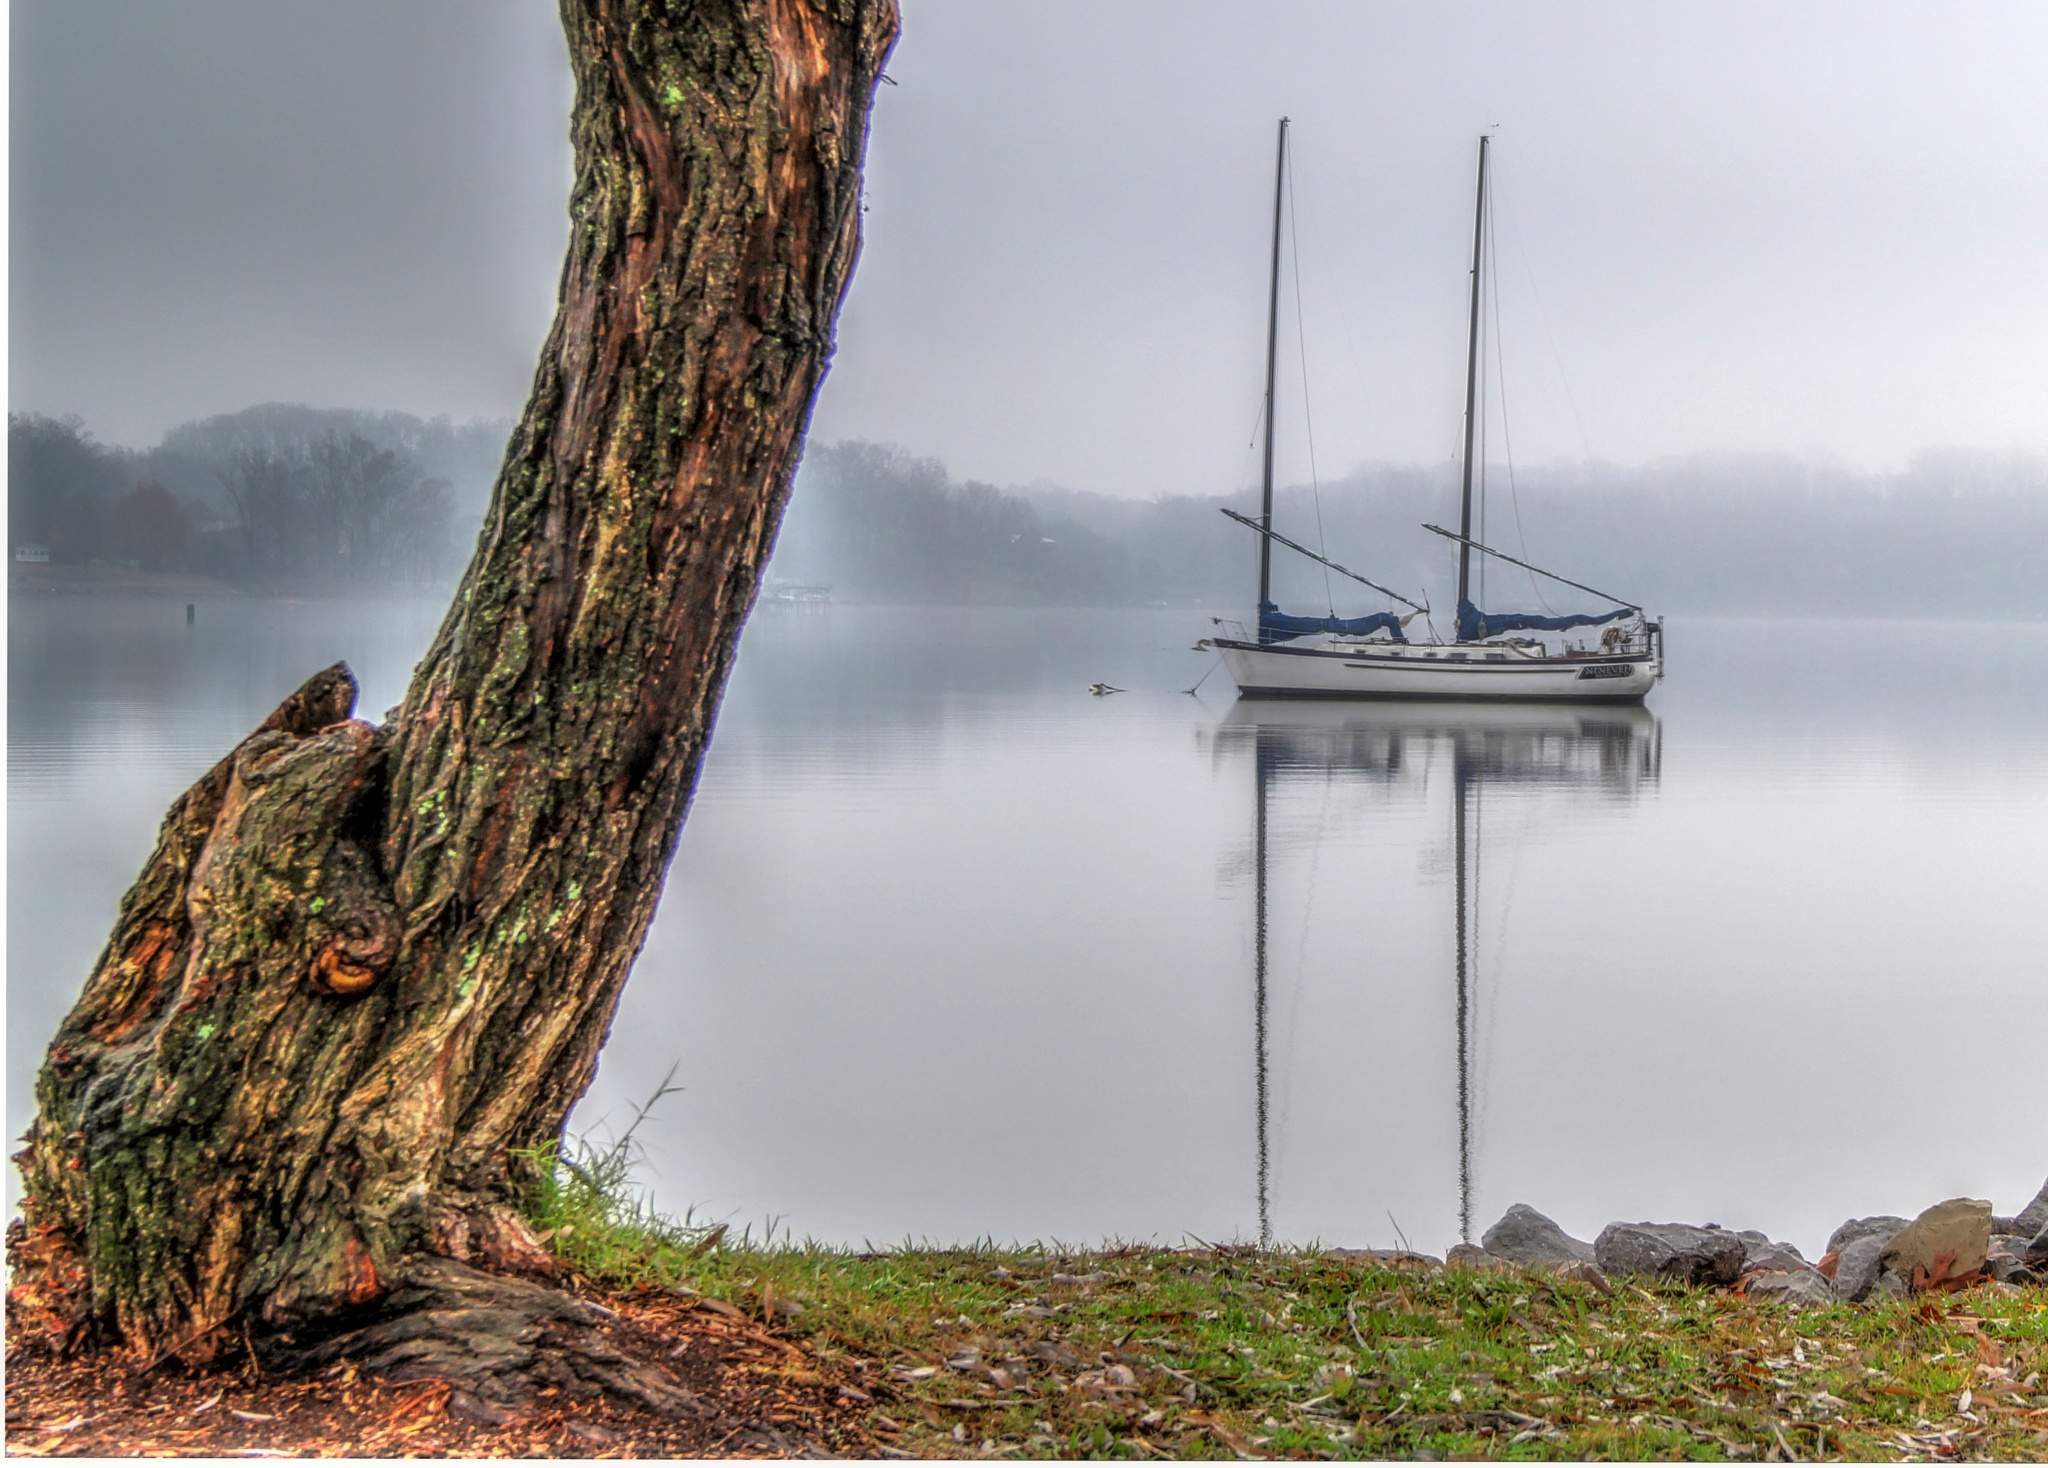 Fog In The Harbor by daryl.chamlee.9